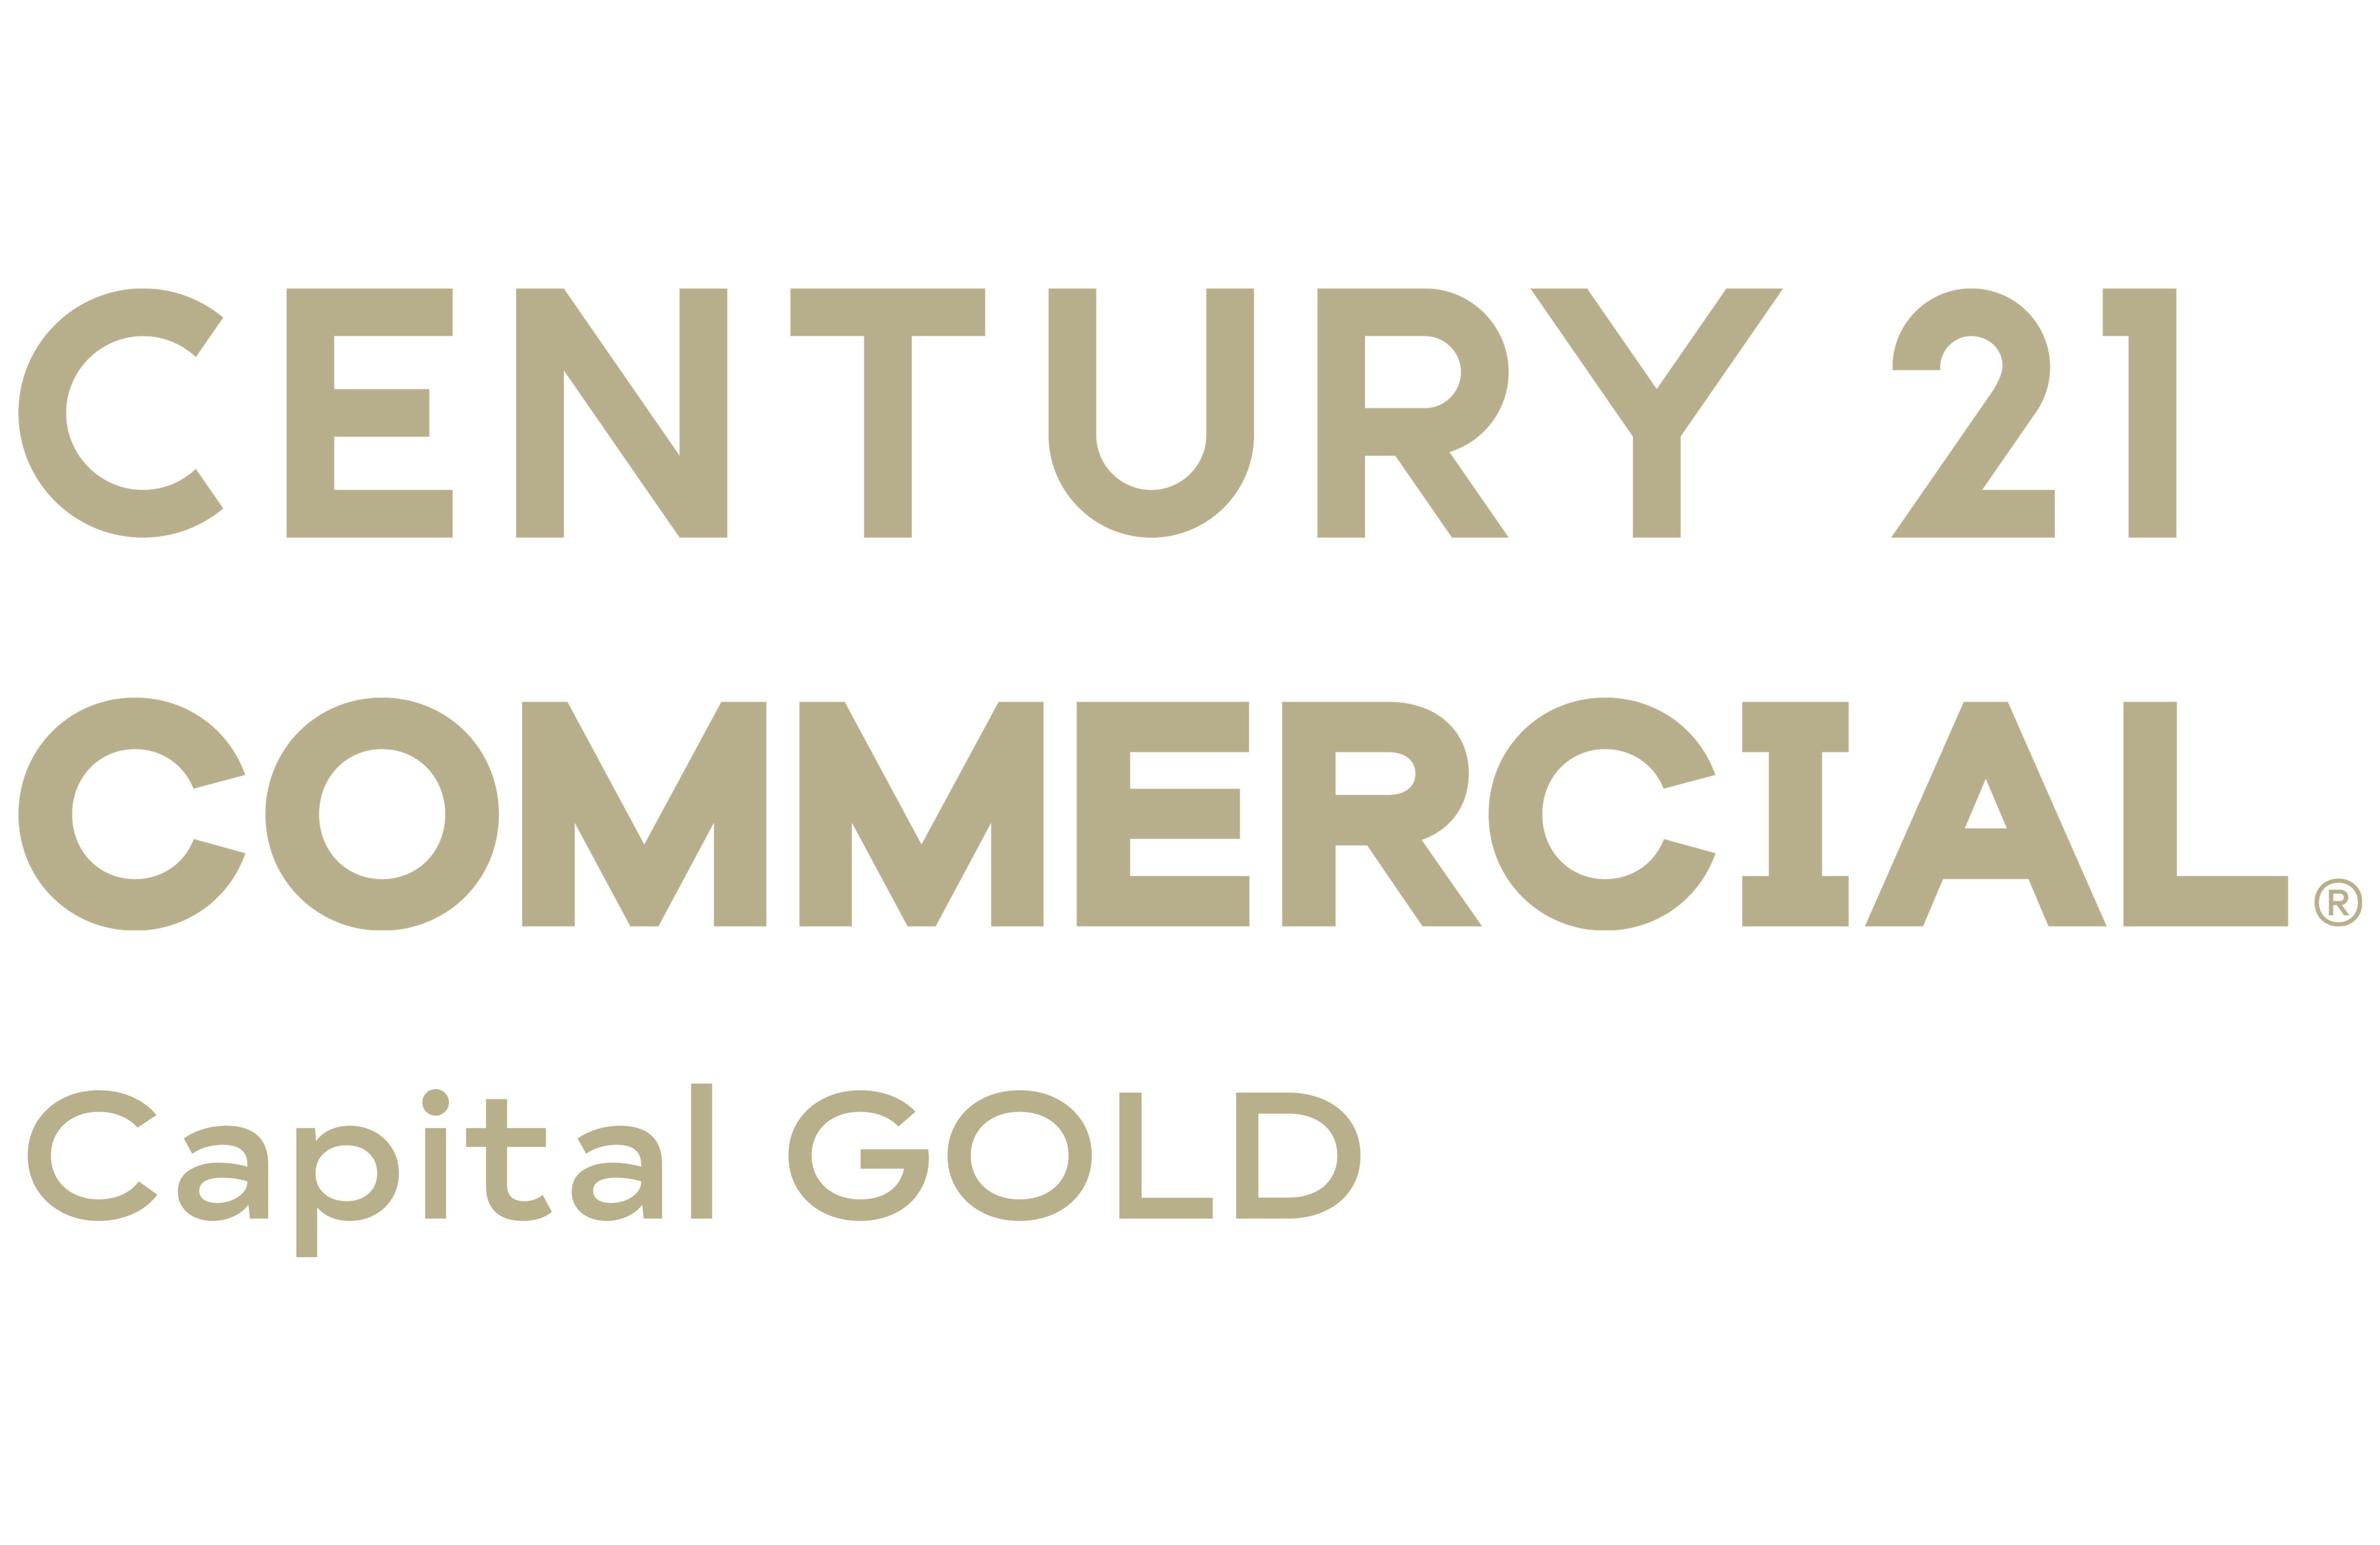 Tim Russell of CENTURY 21 Capital GOLD logo